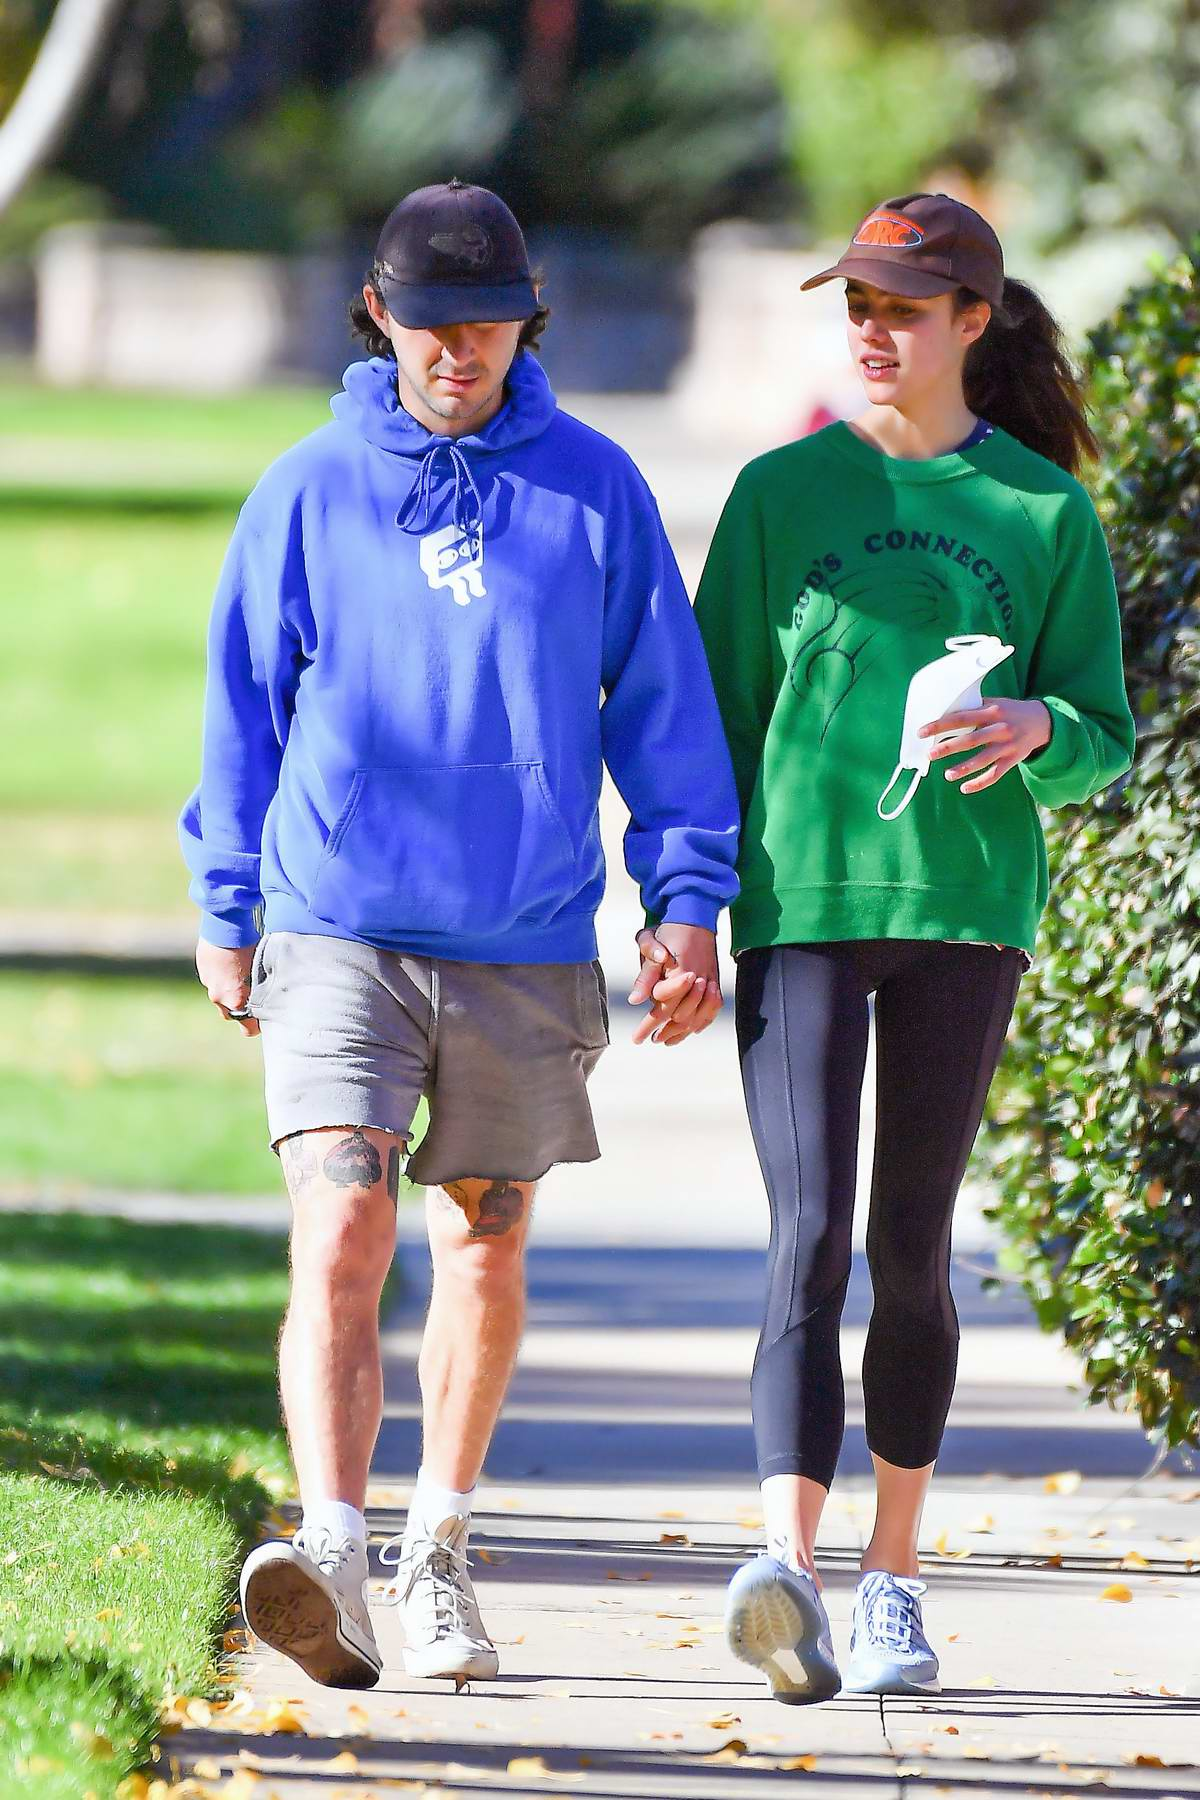 Margaret Qualley and Shia LaBeouf hold hands as they enjoys a stroll at the Huntington Gardens in Pasadena, California